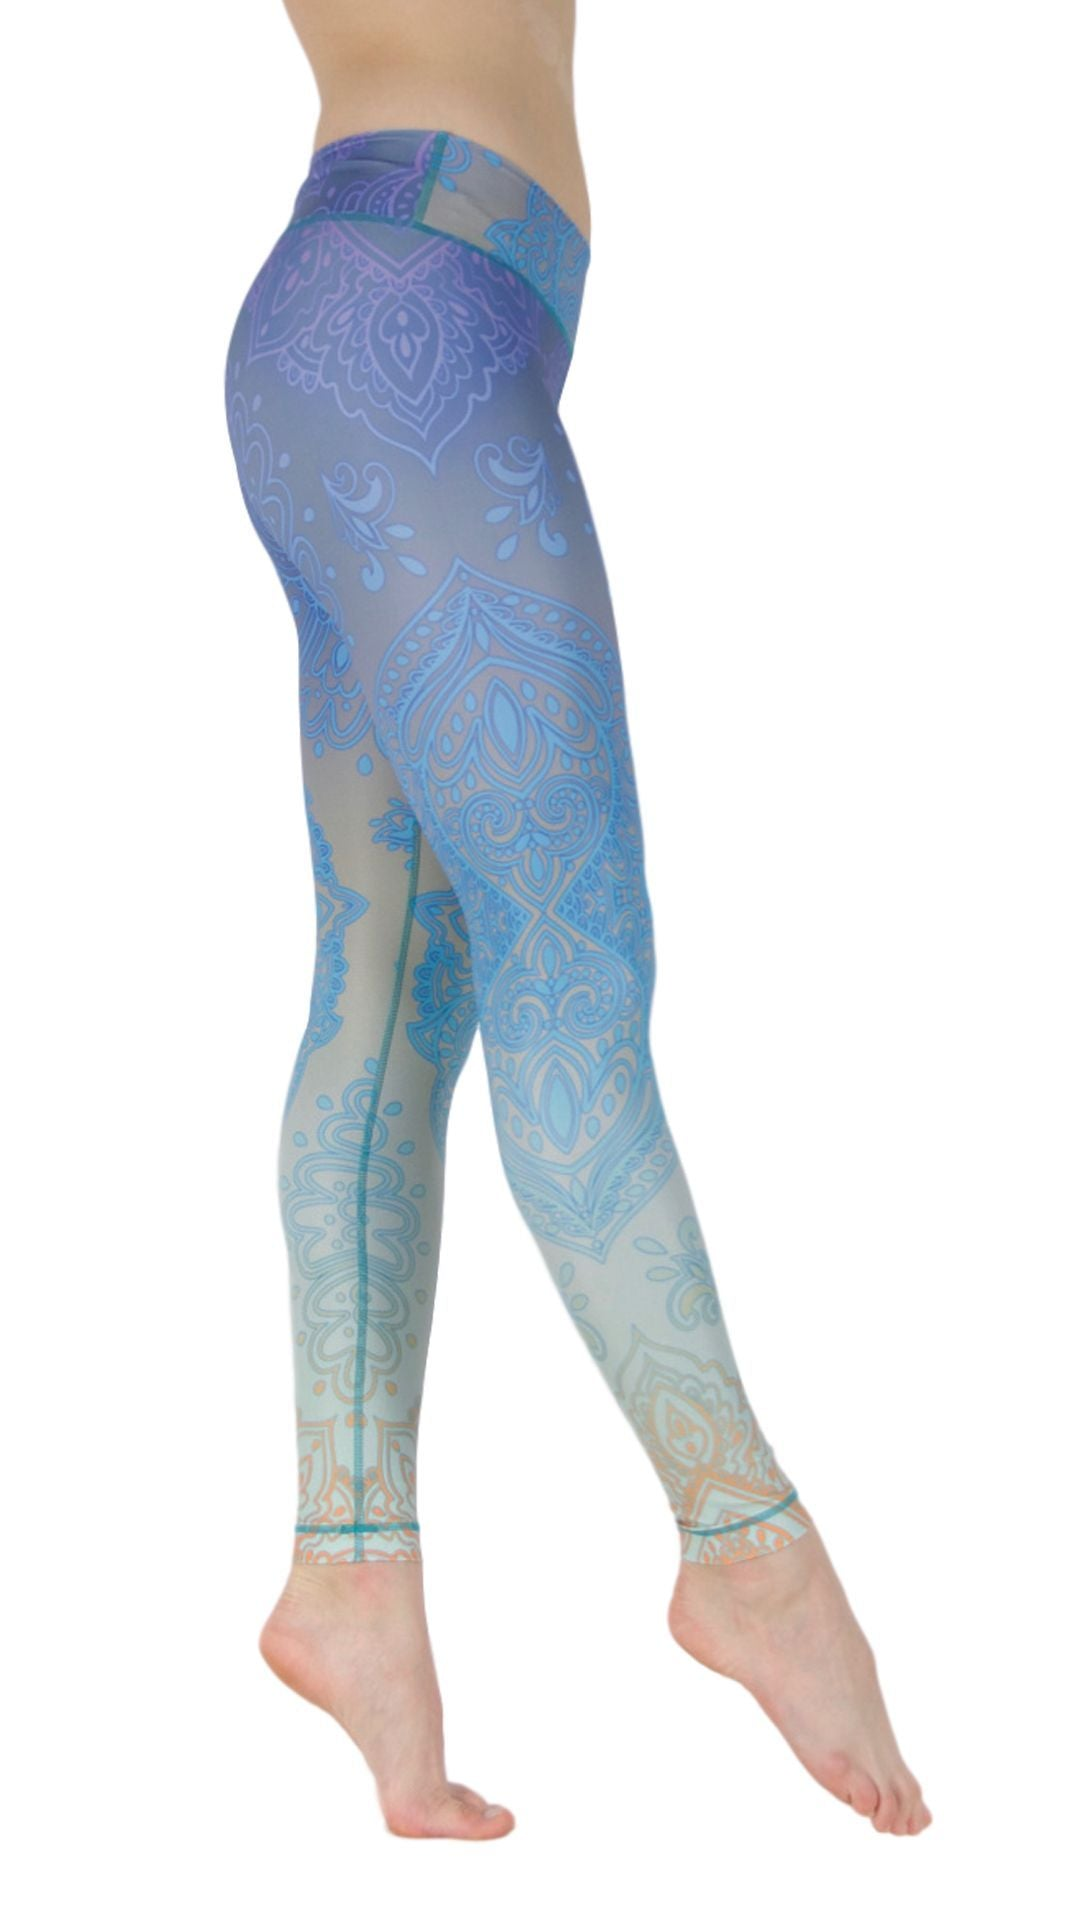 Queen by Niyama - High Quality, Yoga Legging for Movement Artists.